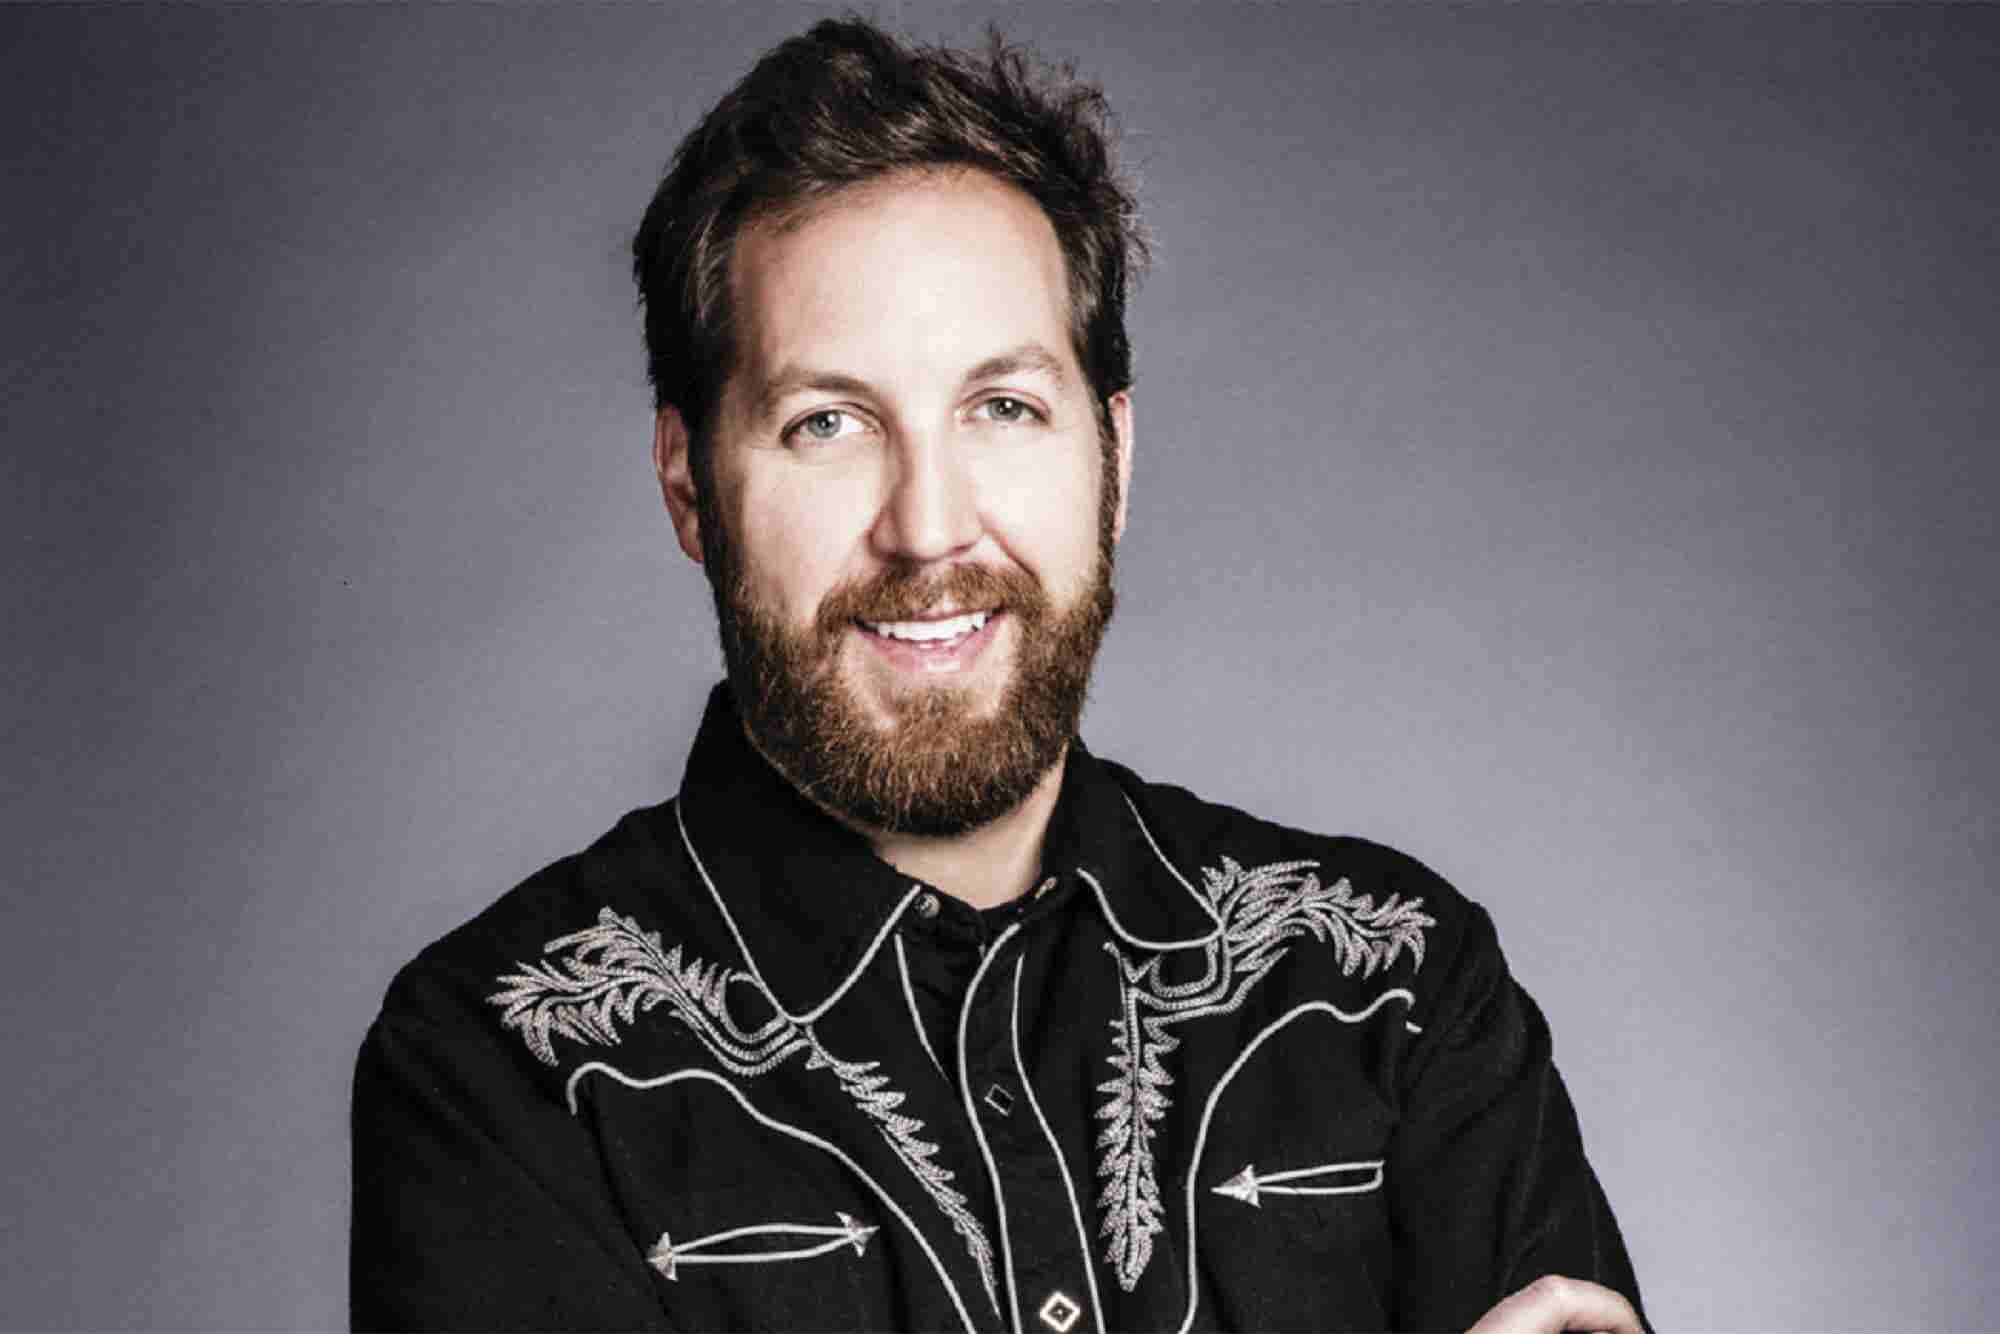 After Chris Sacca's Apology to Women Founders, The Internet Responds With Culture Tips That Can Help Any Company